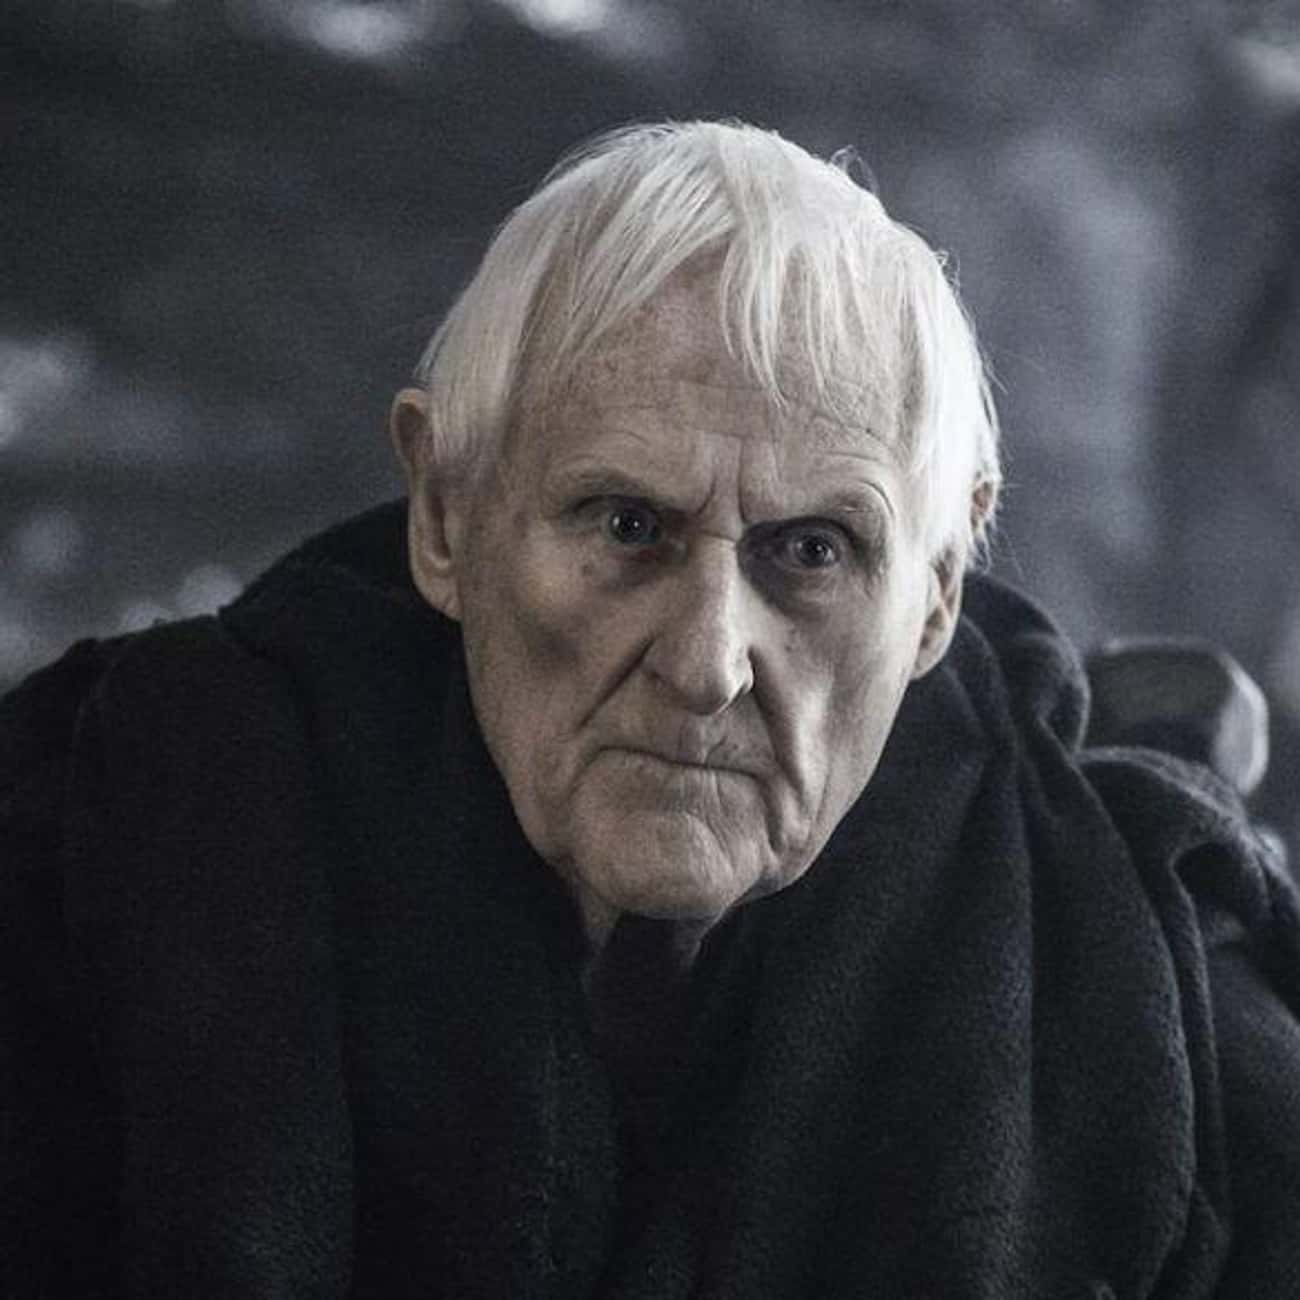 We're All Human is listed (or ranked) 3 on the list The Best Maester Aemon Quotes